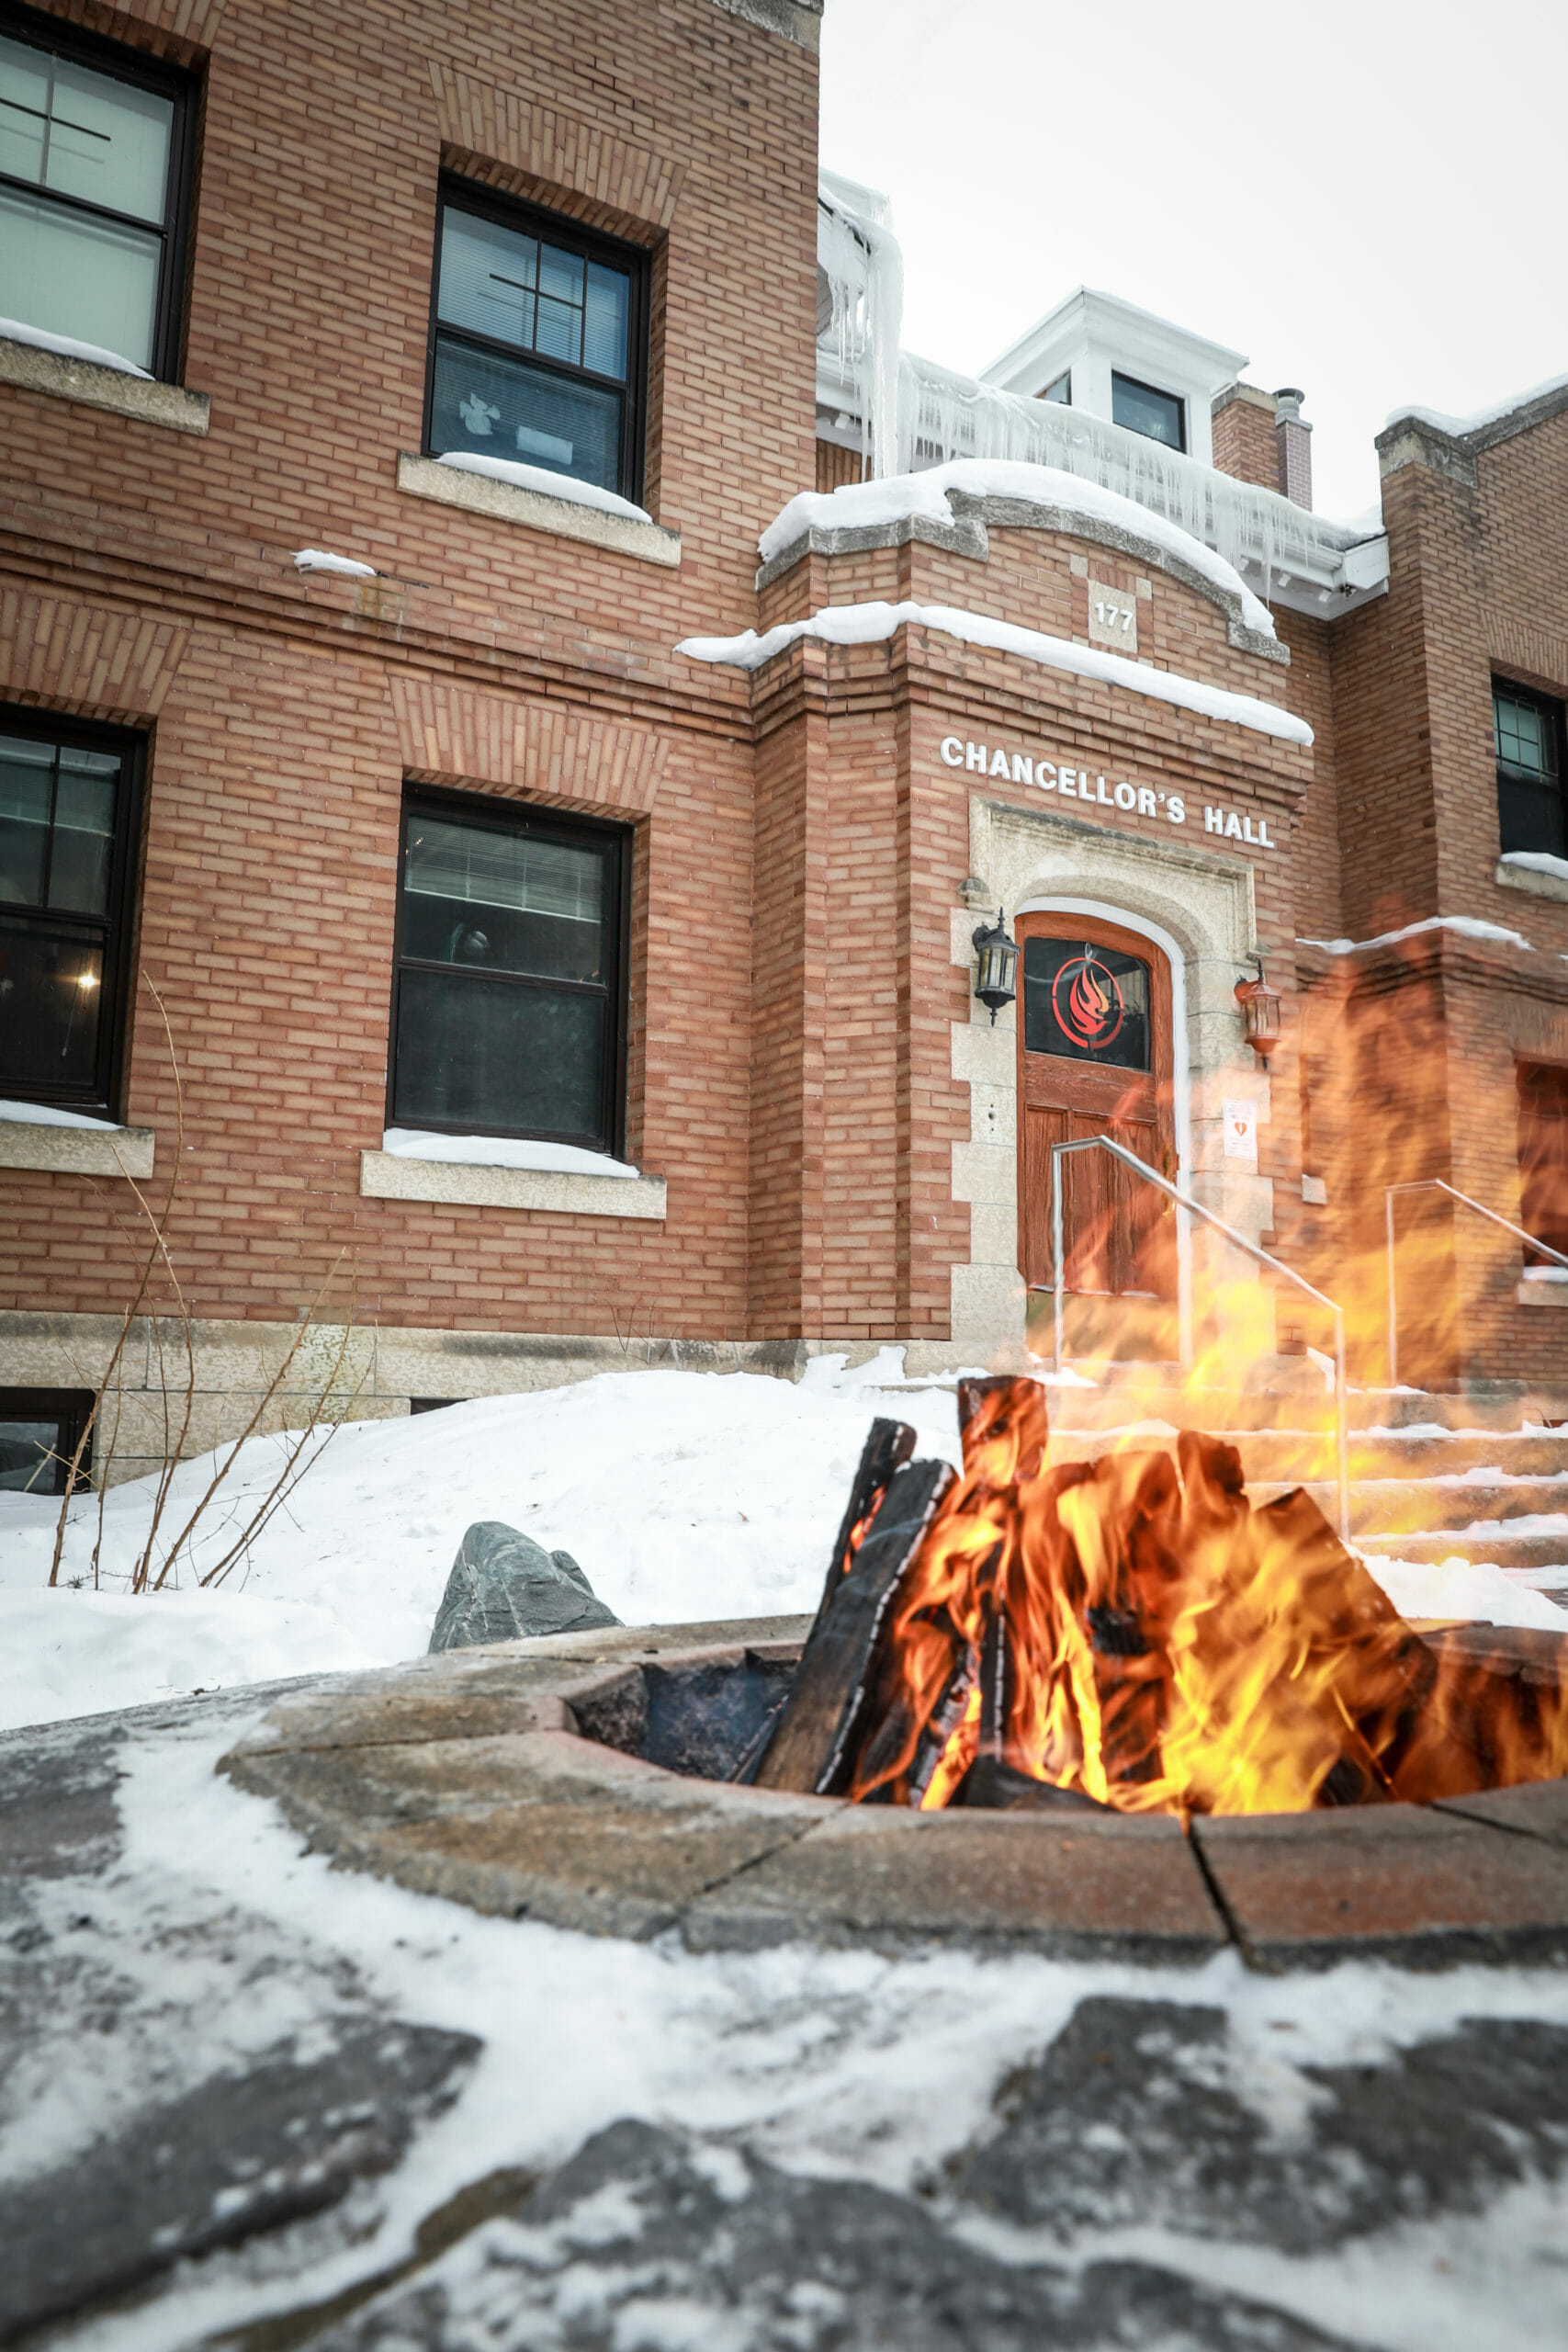 Fire burning outside the NCTR building in the winter